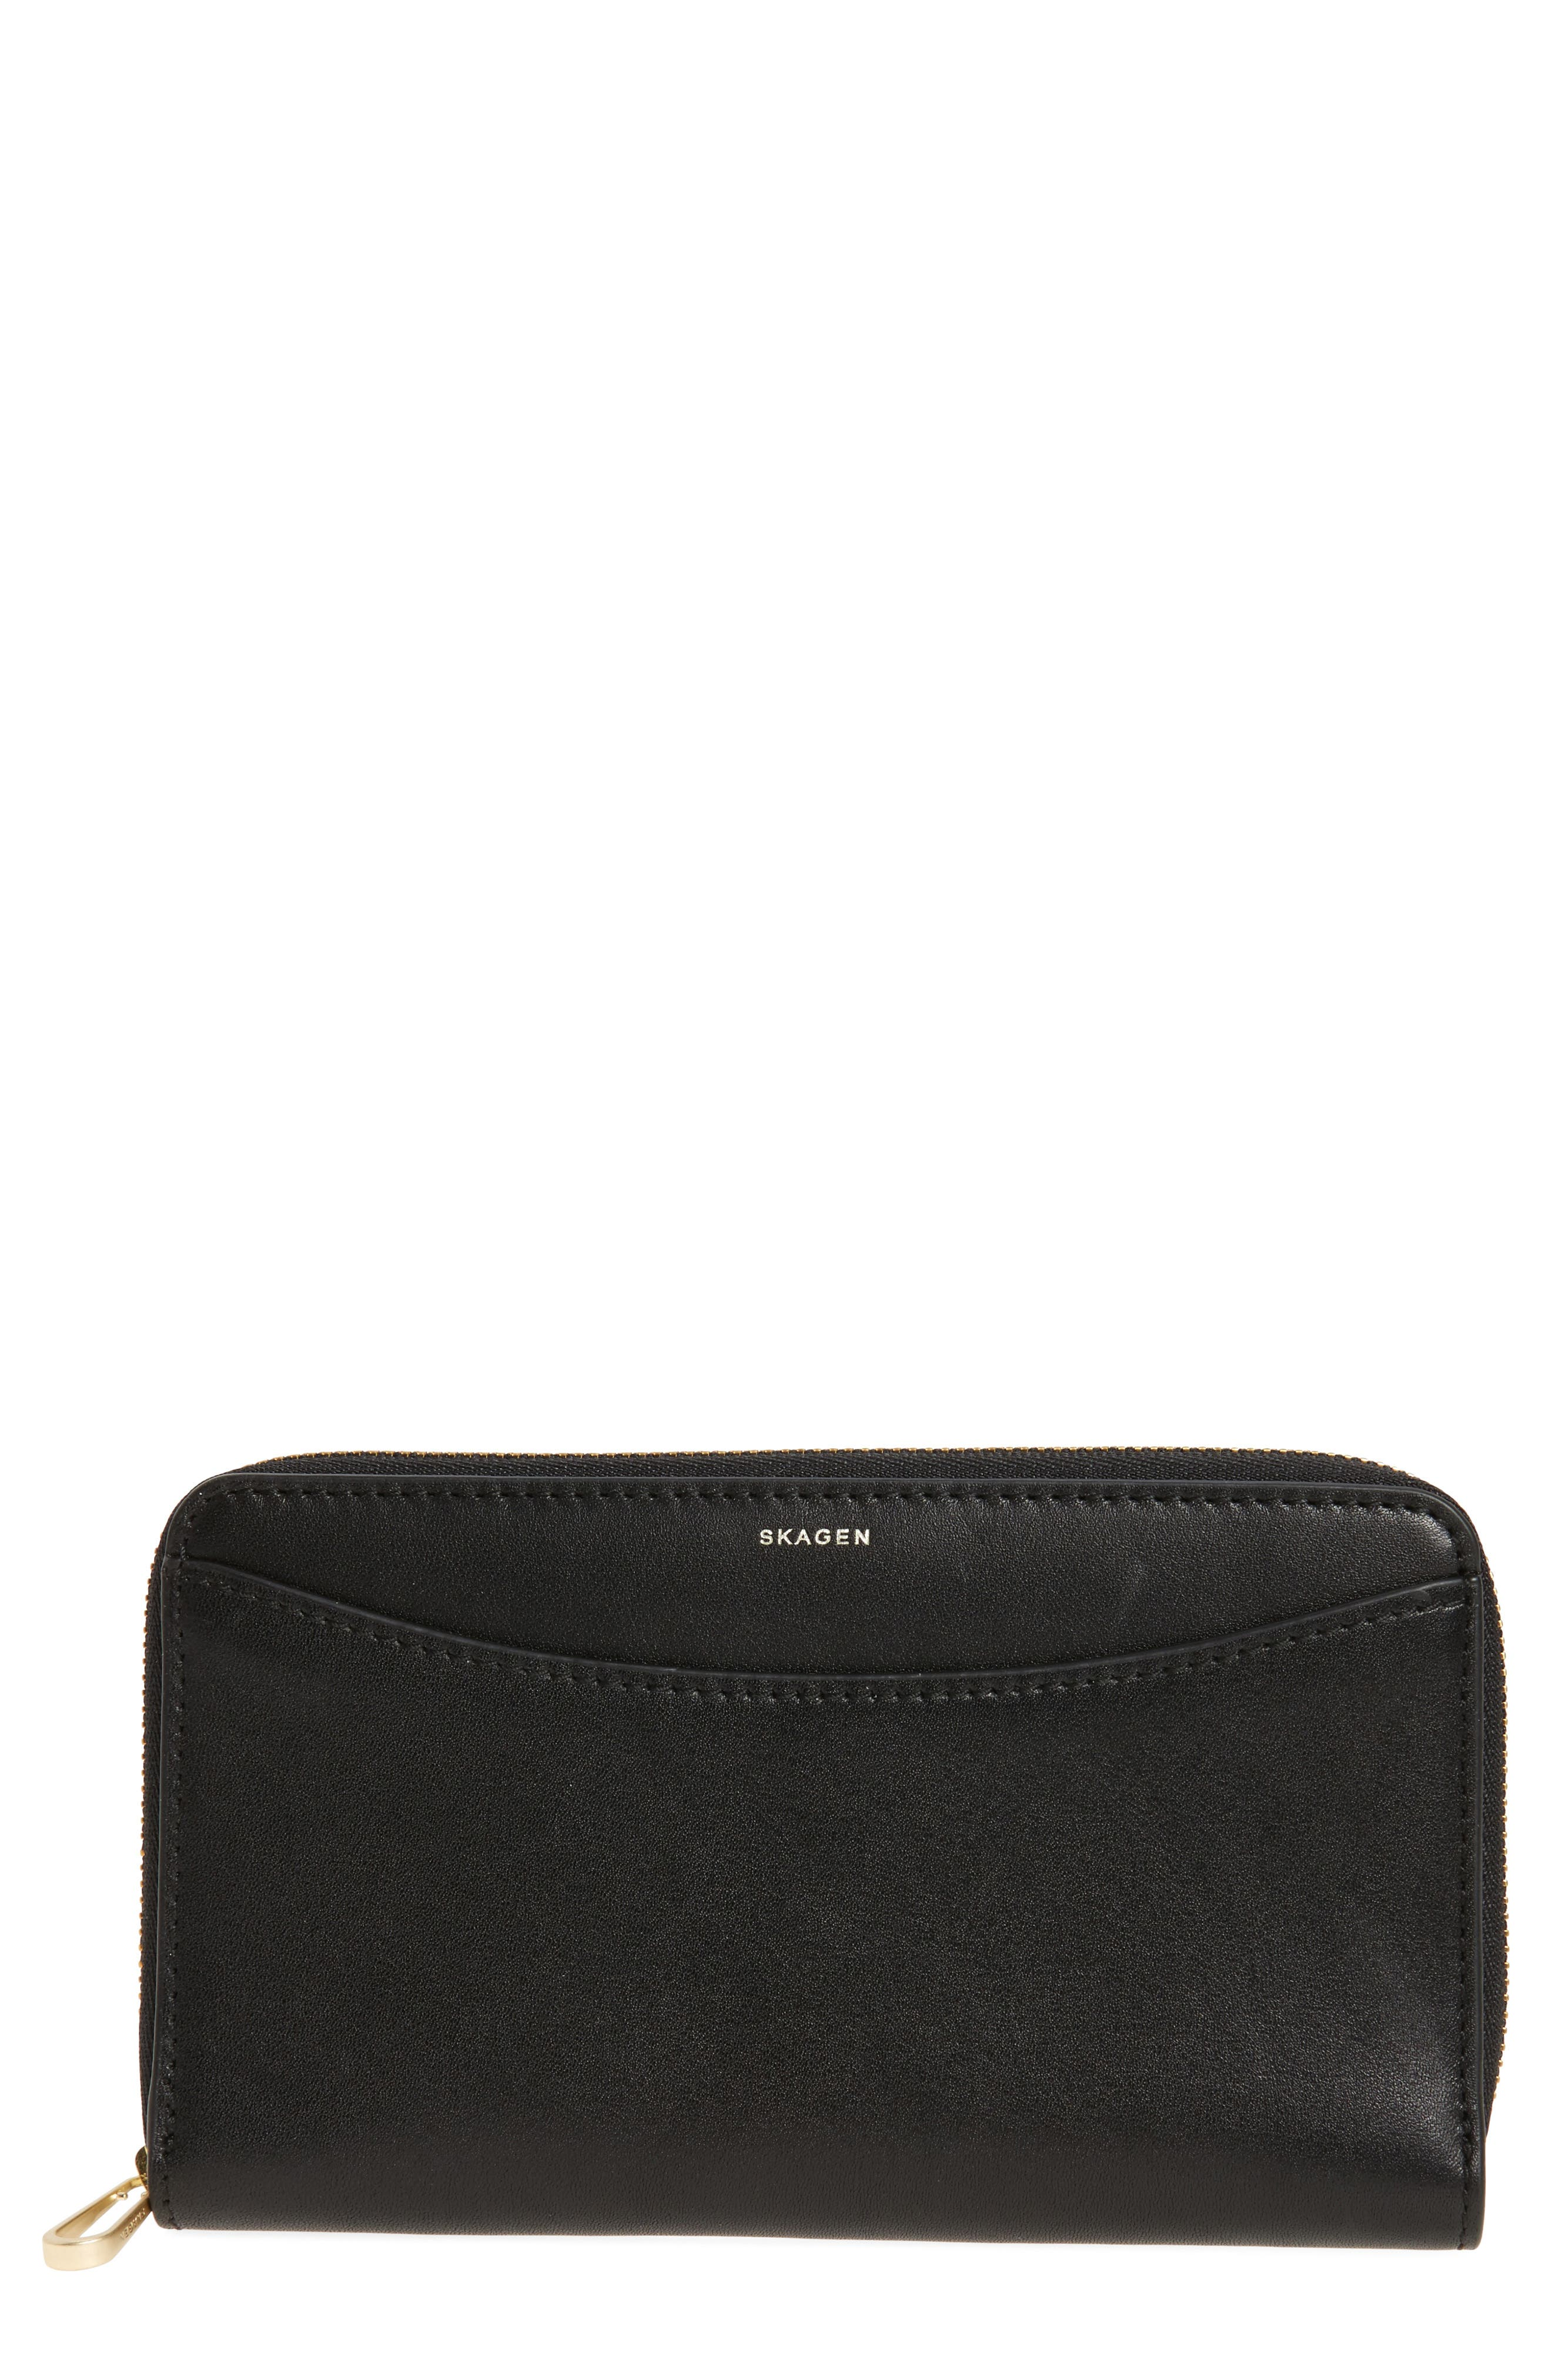 Alternate Image 1 Selected - Skagen Compact Continental Wallet